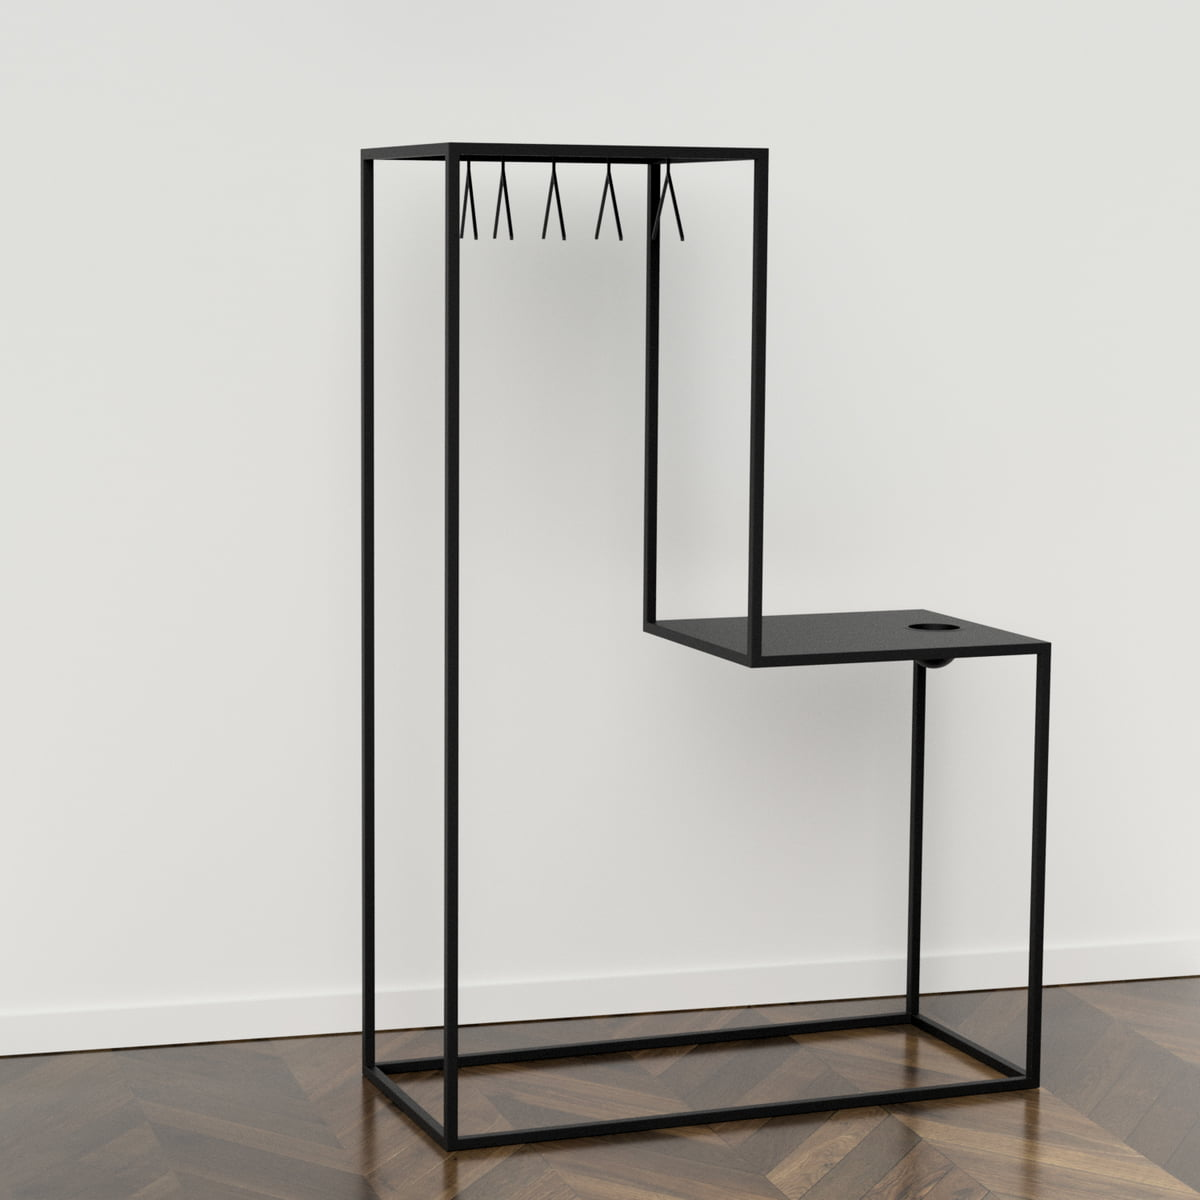 garderobe cool design wall pegs and clothing hooks at einrichten design with garderobe great. Black Bedroom Furniture Sets. Home Design Ideas